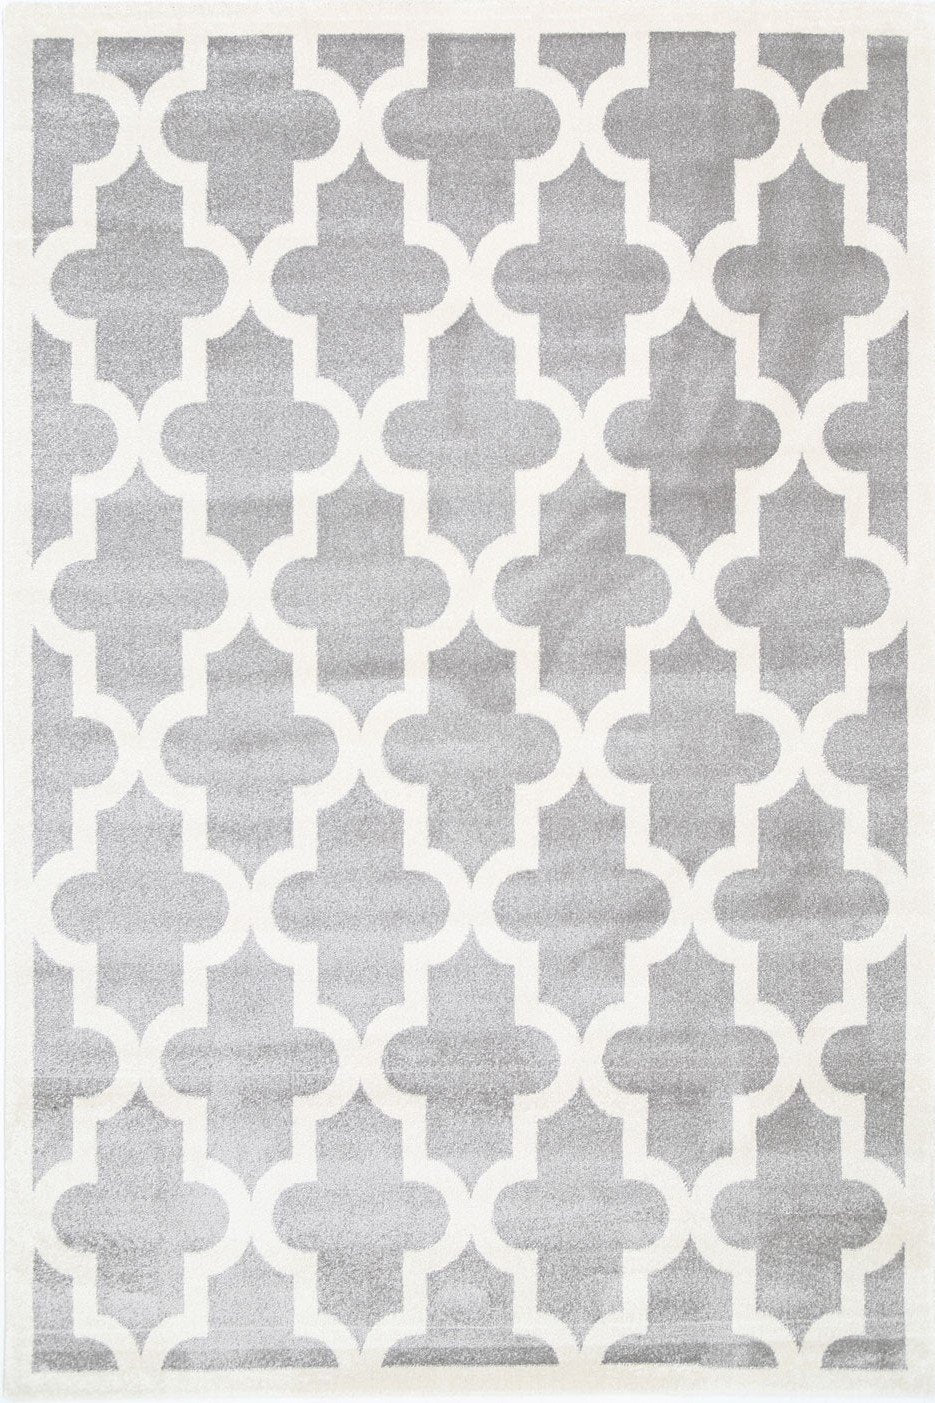 Piccolo Light Grey and White Lattice Pattern Kids Rug